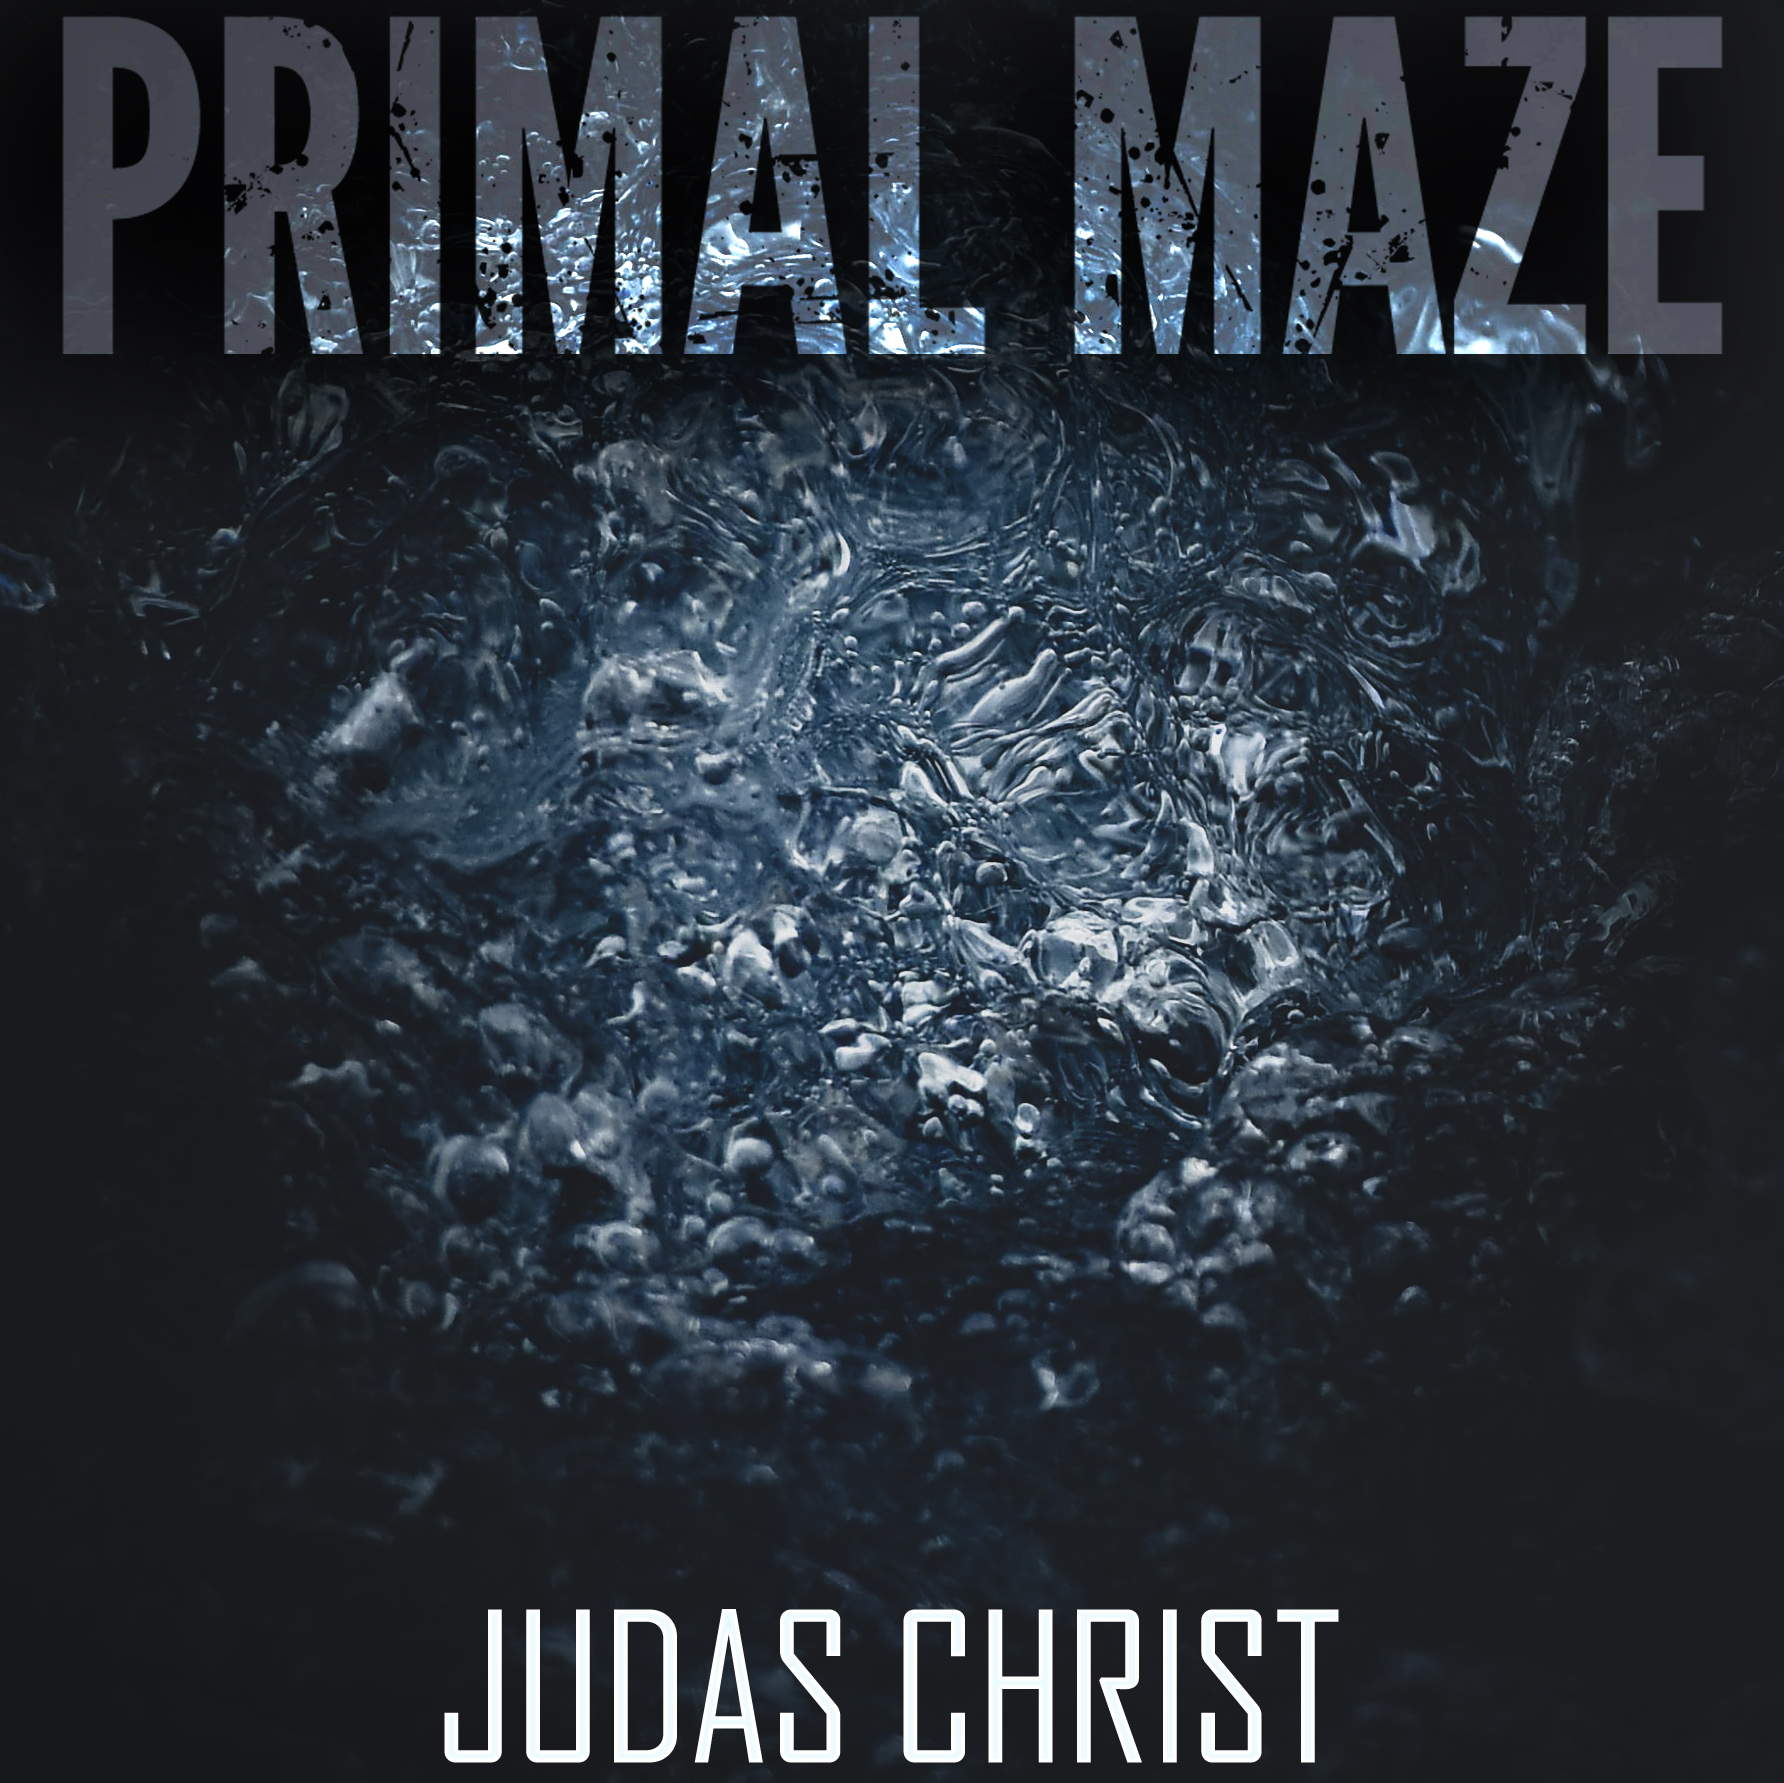 Judas Christ by Primal Maze